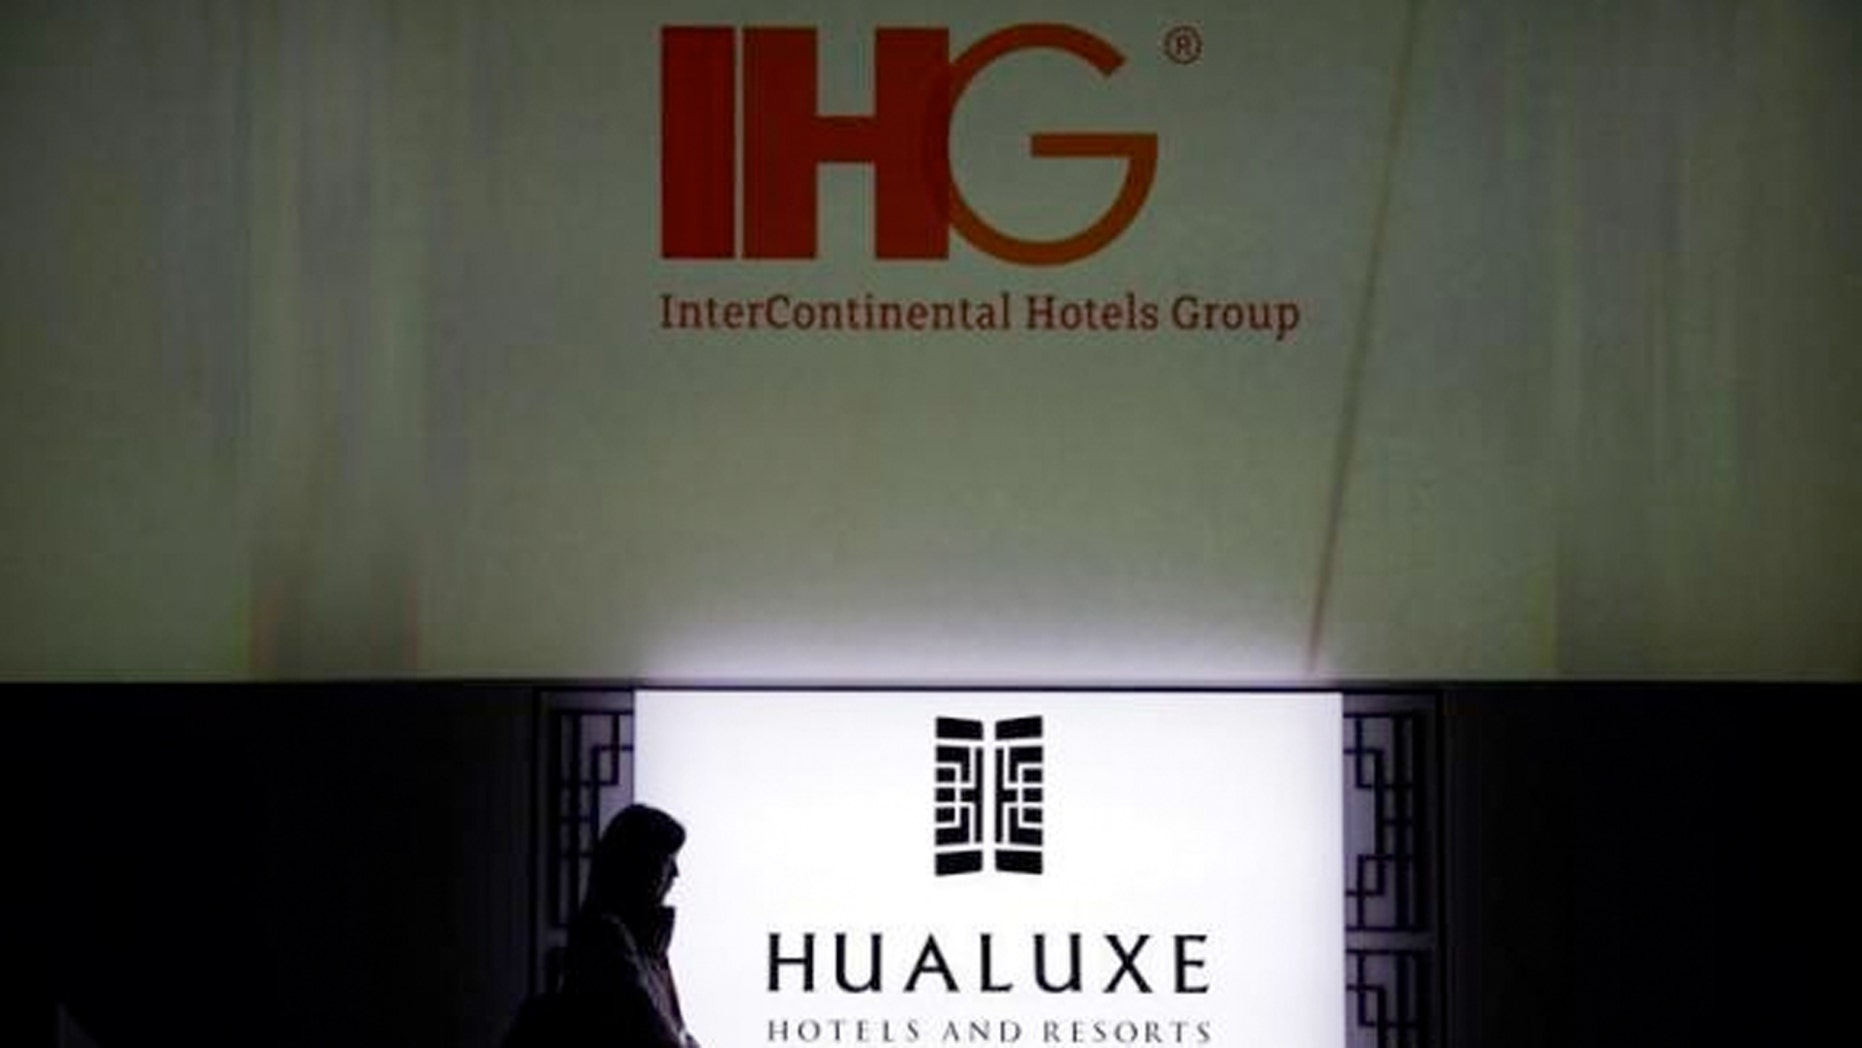 IHG, which owns properties like Holiday Inn and Candlewood Suites, has admitted to mistakenly printing the wrong 1-800 help number on the back of new memberships cards issued in September.